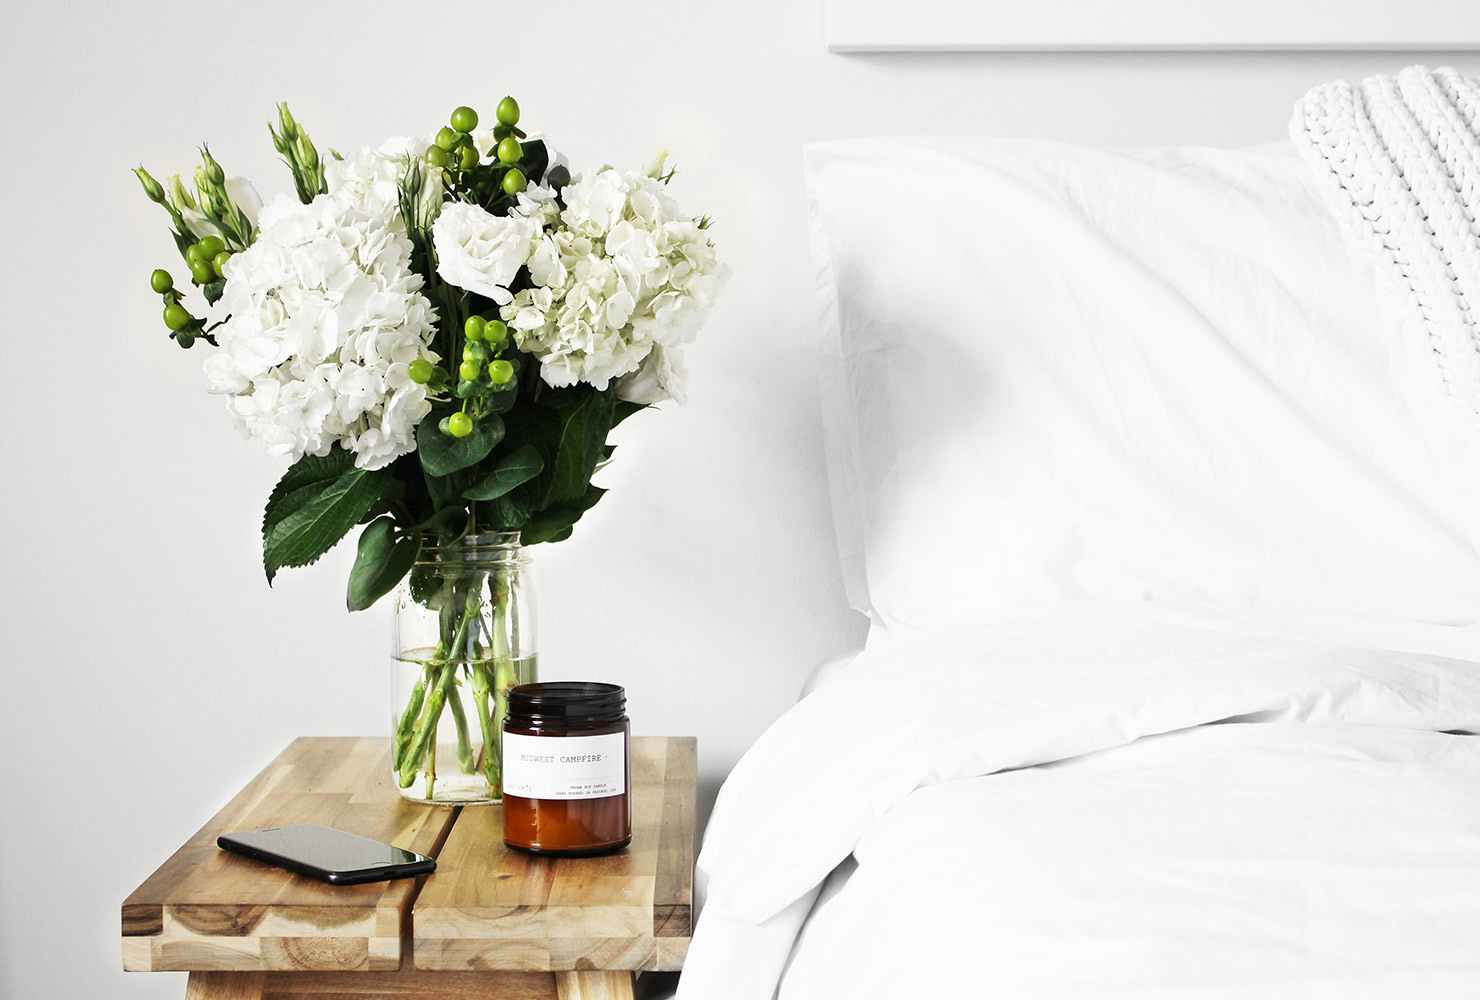 White flowers next to white bed.